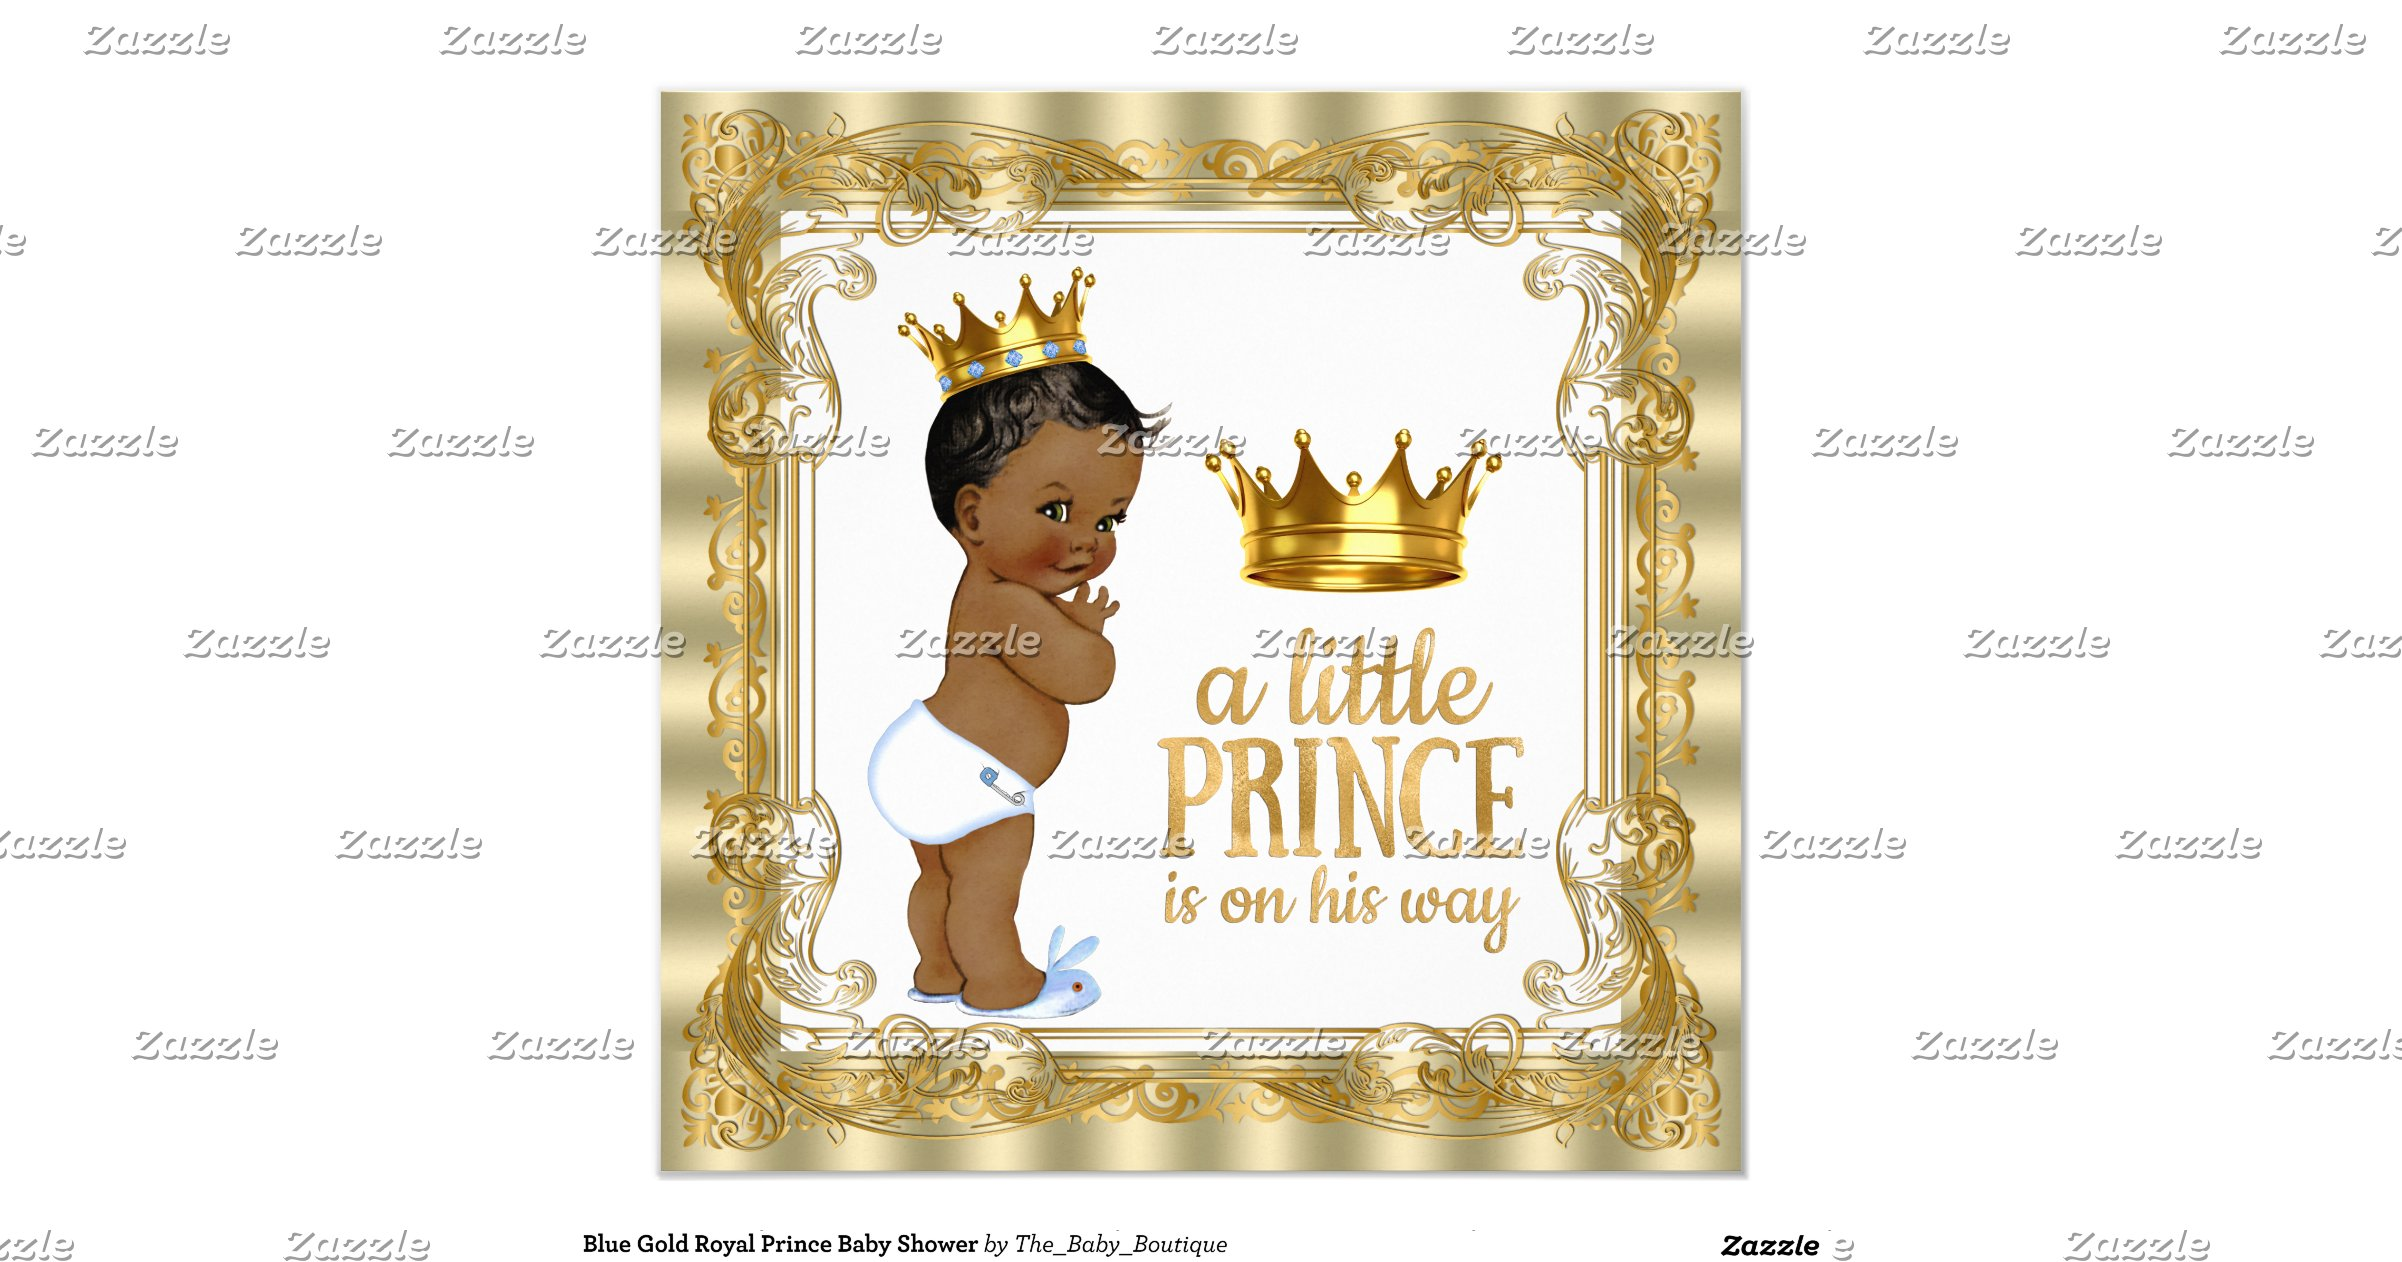 blue gold royal prince baby shower invitation